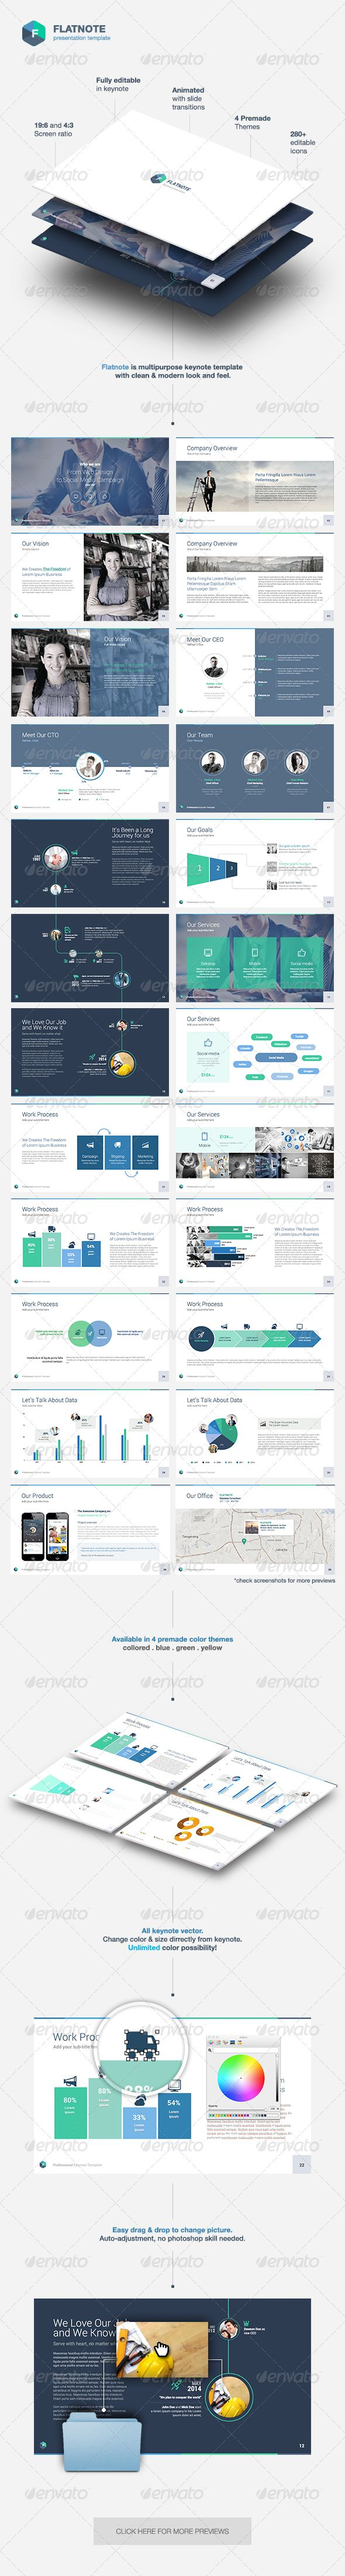 Flatnote - Business Keynote Template - Keynote Templates Presentation Templates